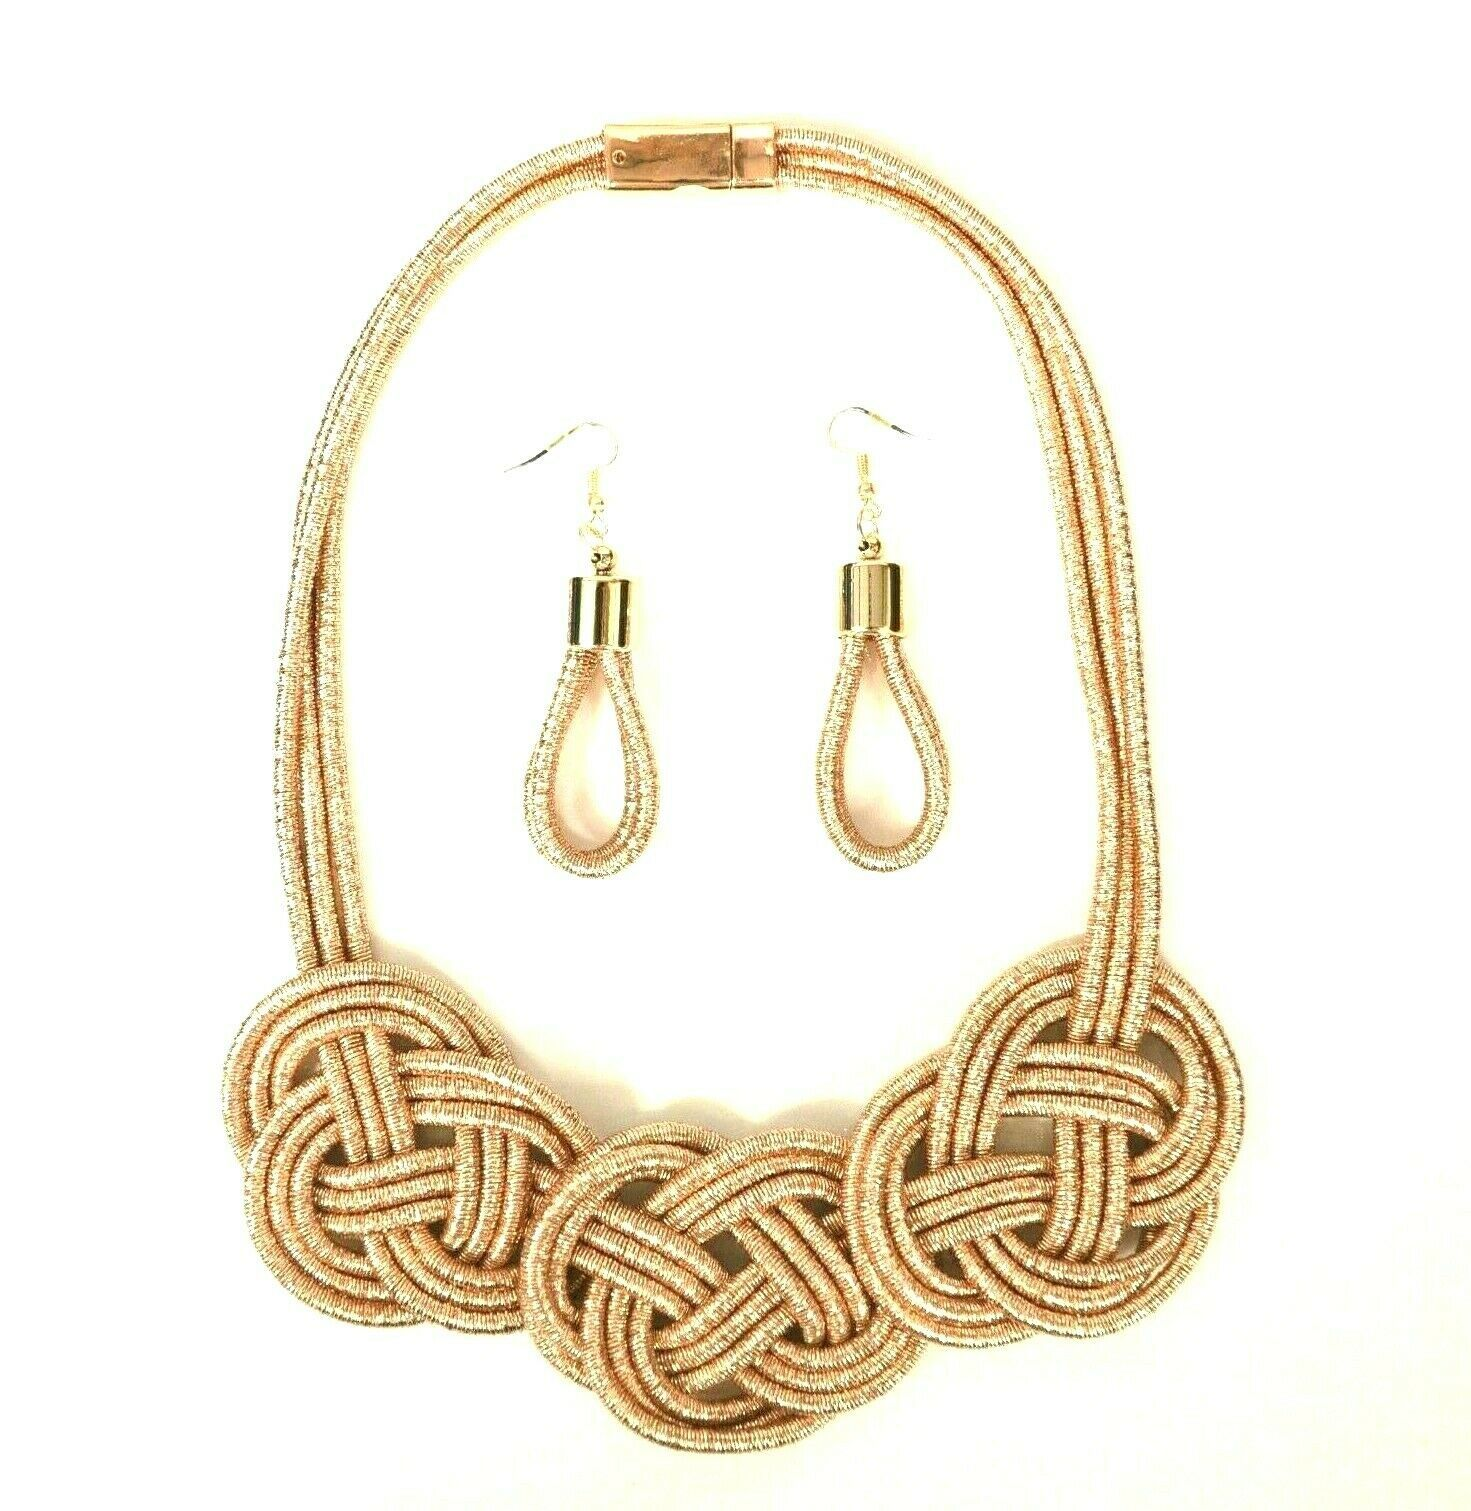 Primary image for STATEMENT BOHO CHUNKY COIL ROPE MULTI LAYER WEAVE NECKLACE EARRING SET PINK